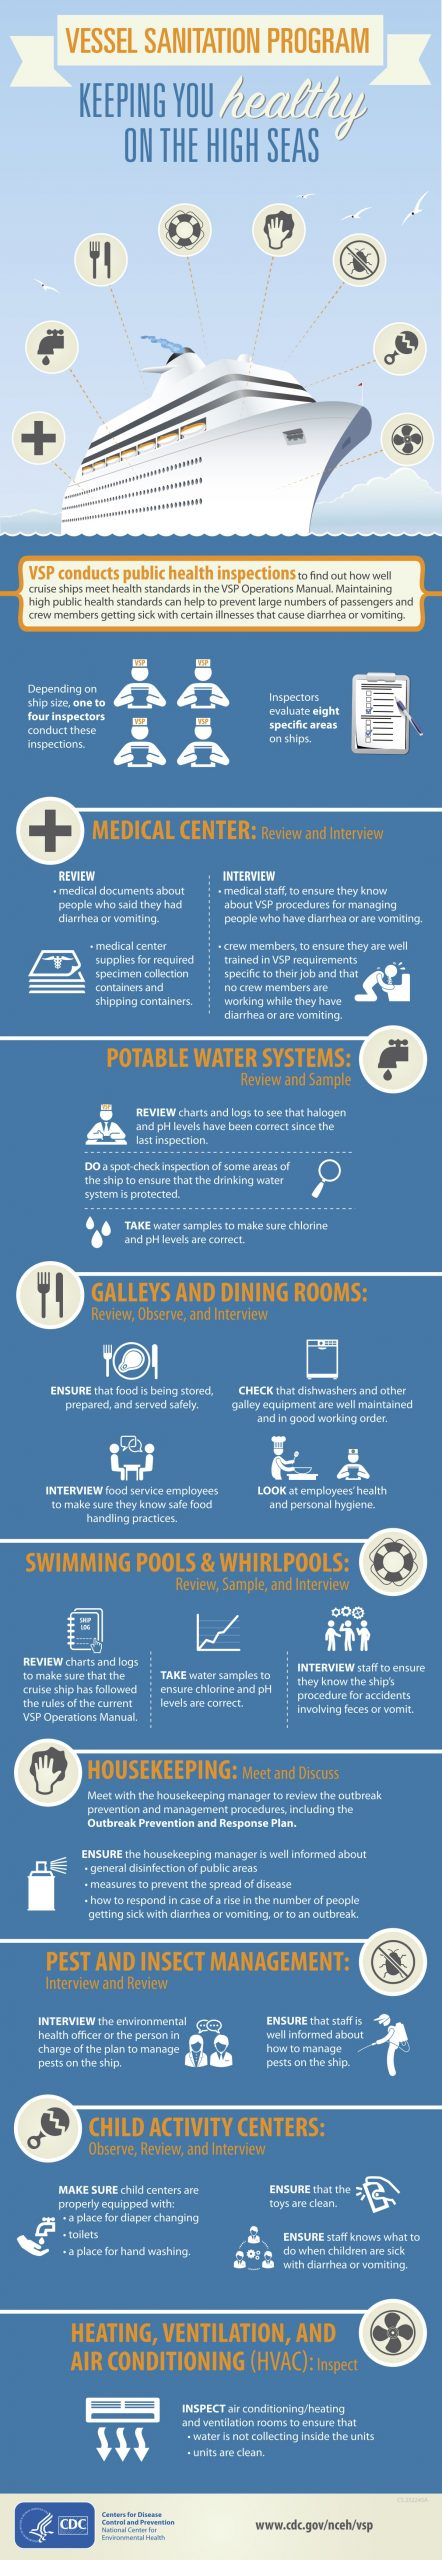 Healthy cruising tips infographic from CDC